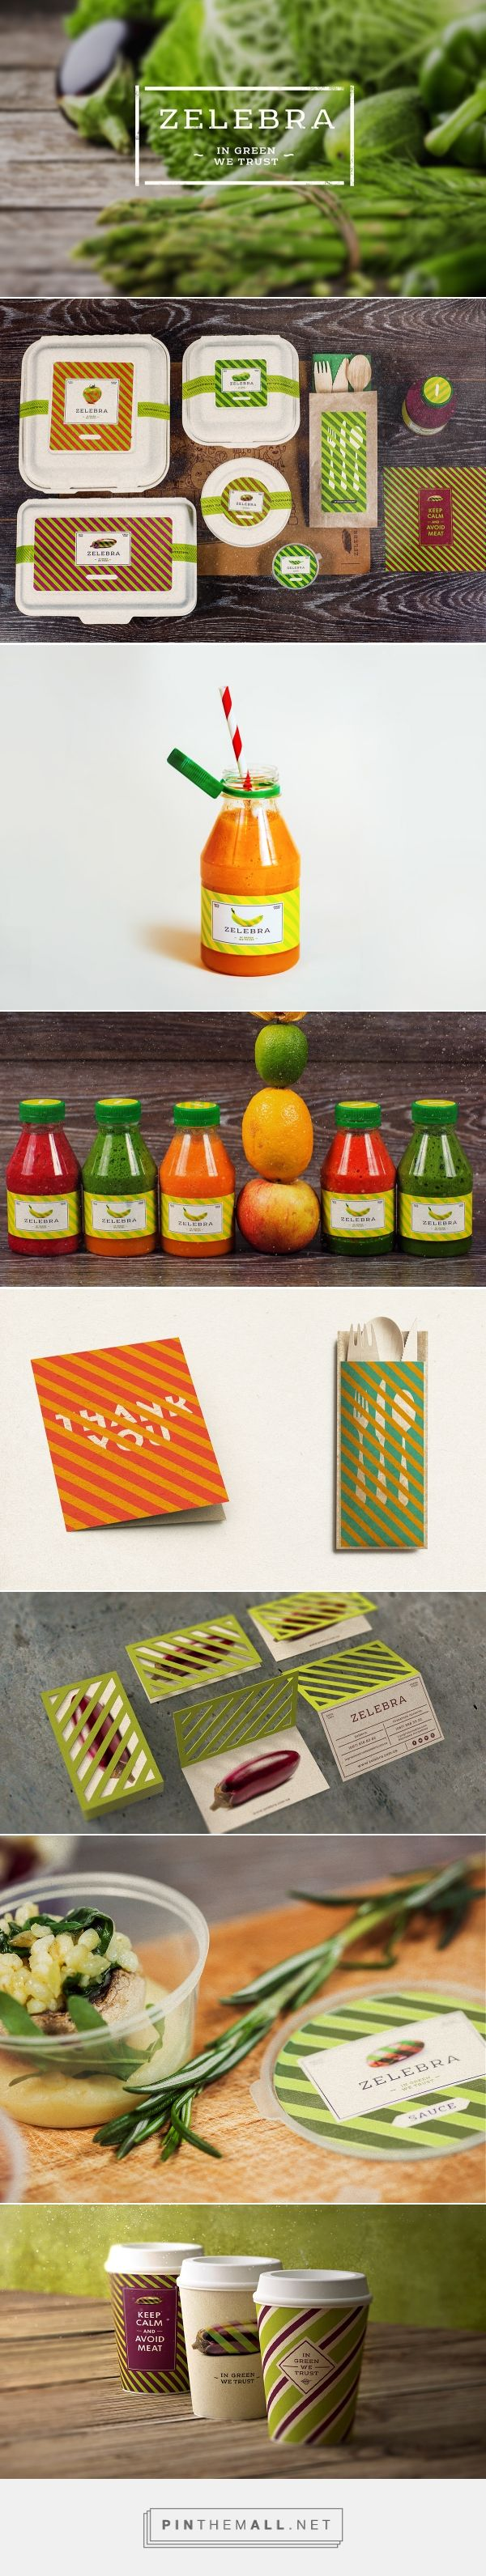 Zelebra Vegan Food & Delivery on Behance curated by Packaging Diva PD. Love this packaging makes me want to go vegan : )